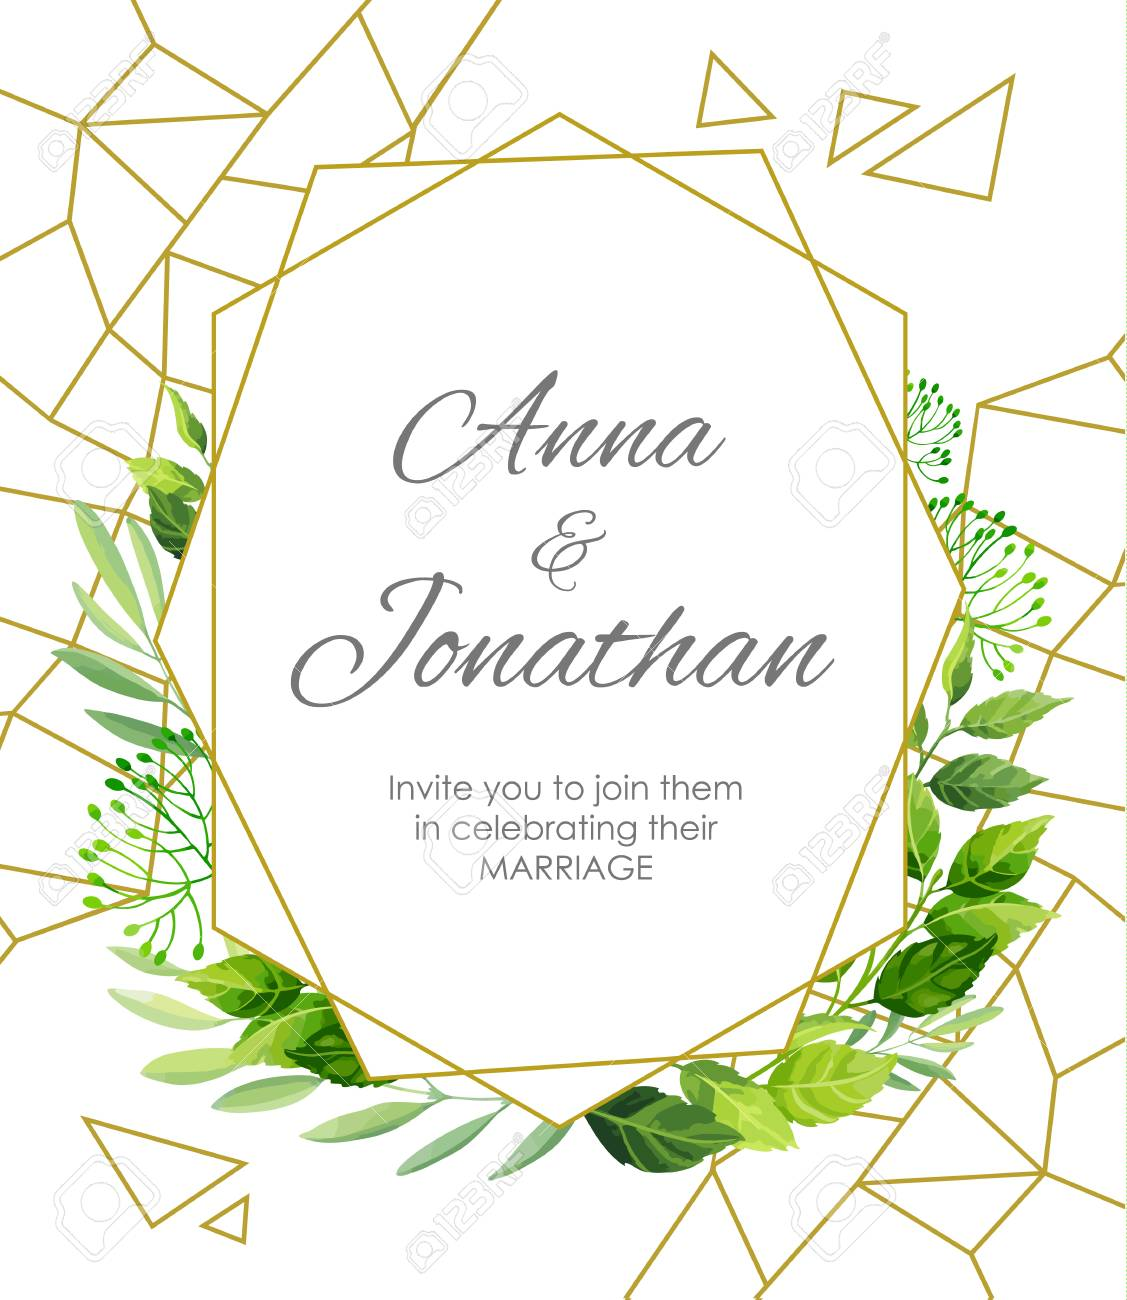 Wedding Invitation With Green Leaves Border And Geometric Pattern